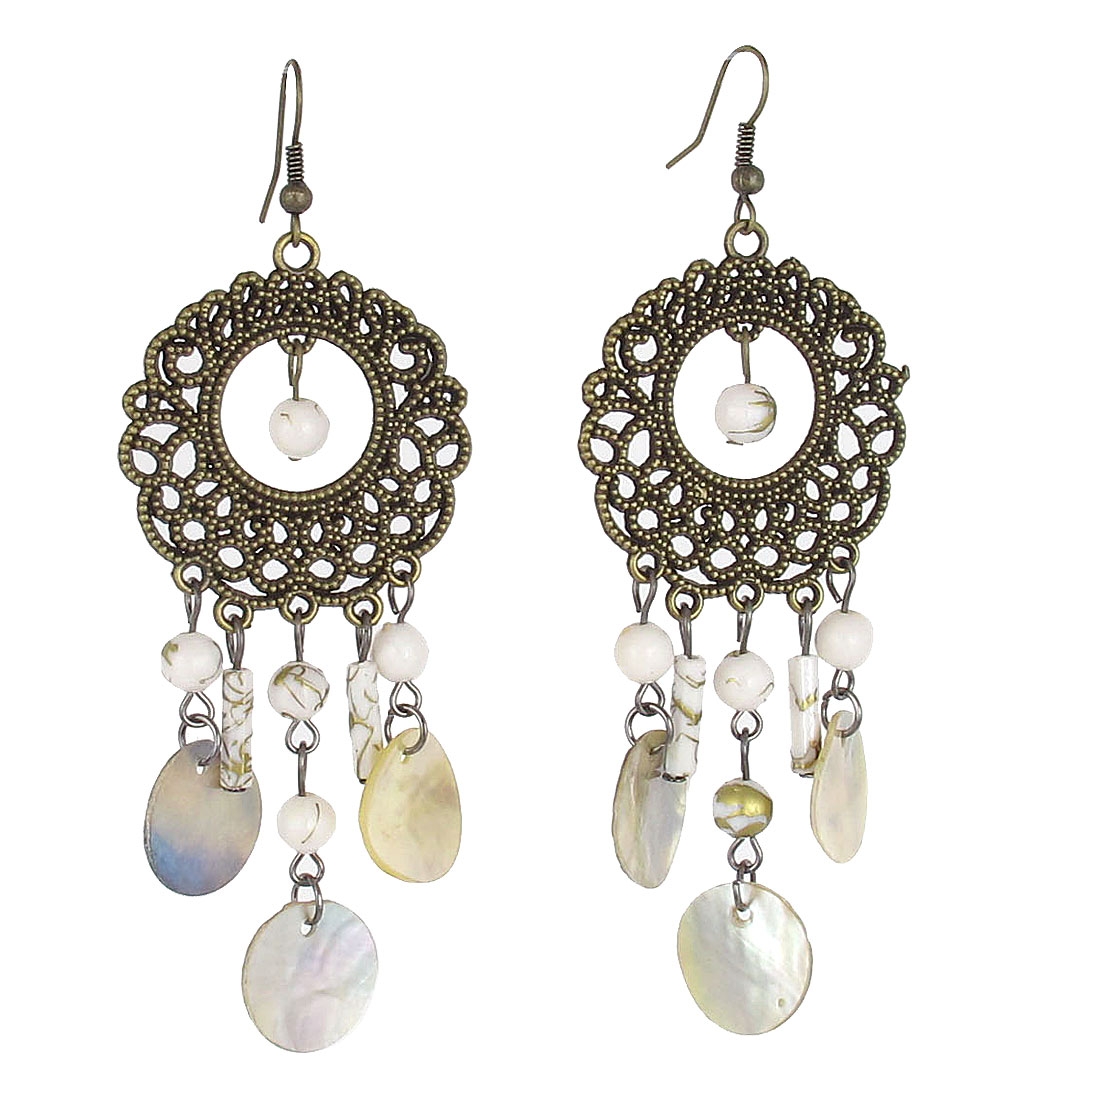 Bronze Tone Circle White Beaded Fish Hook Chandelier Earrings Pair